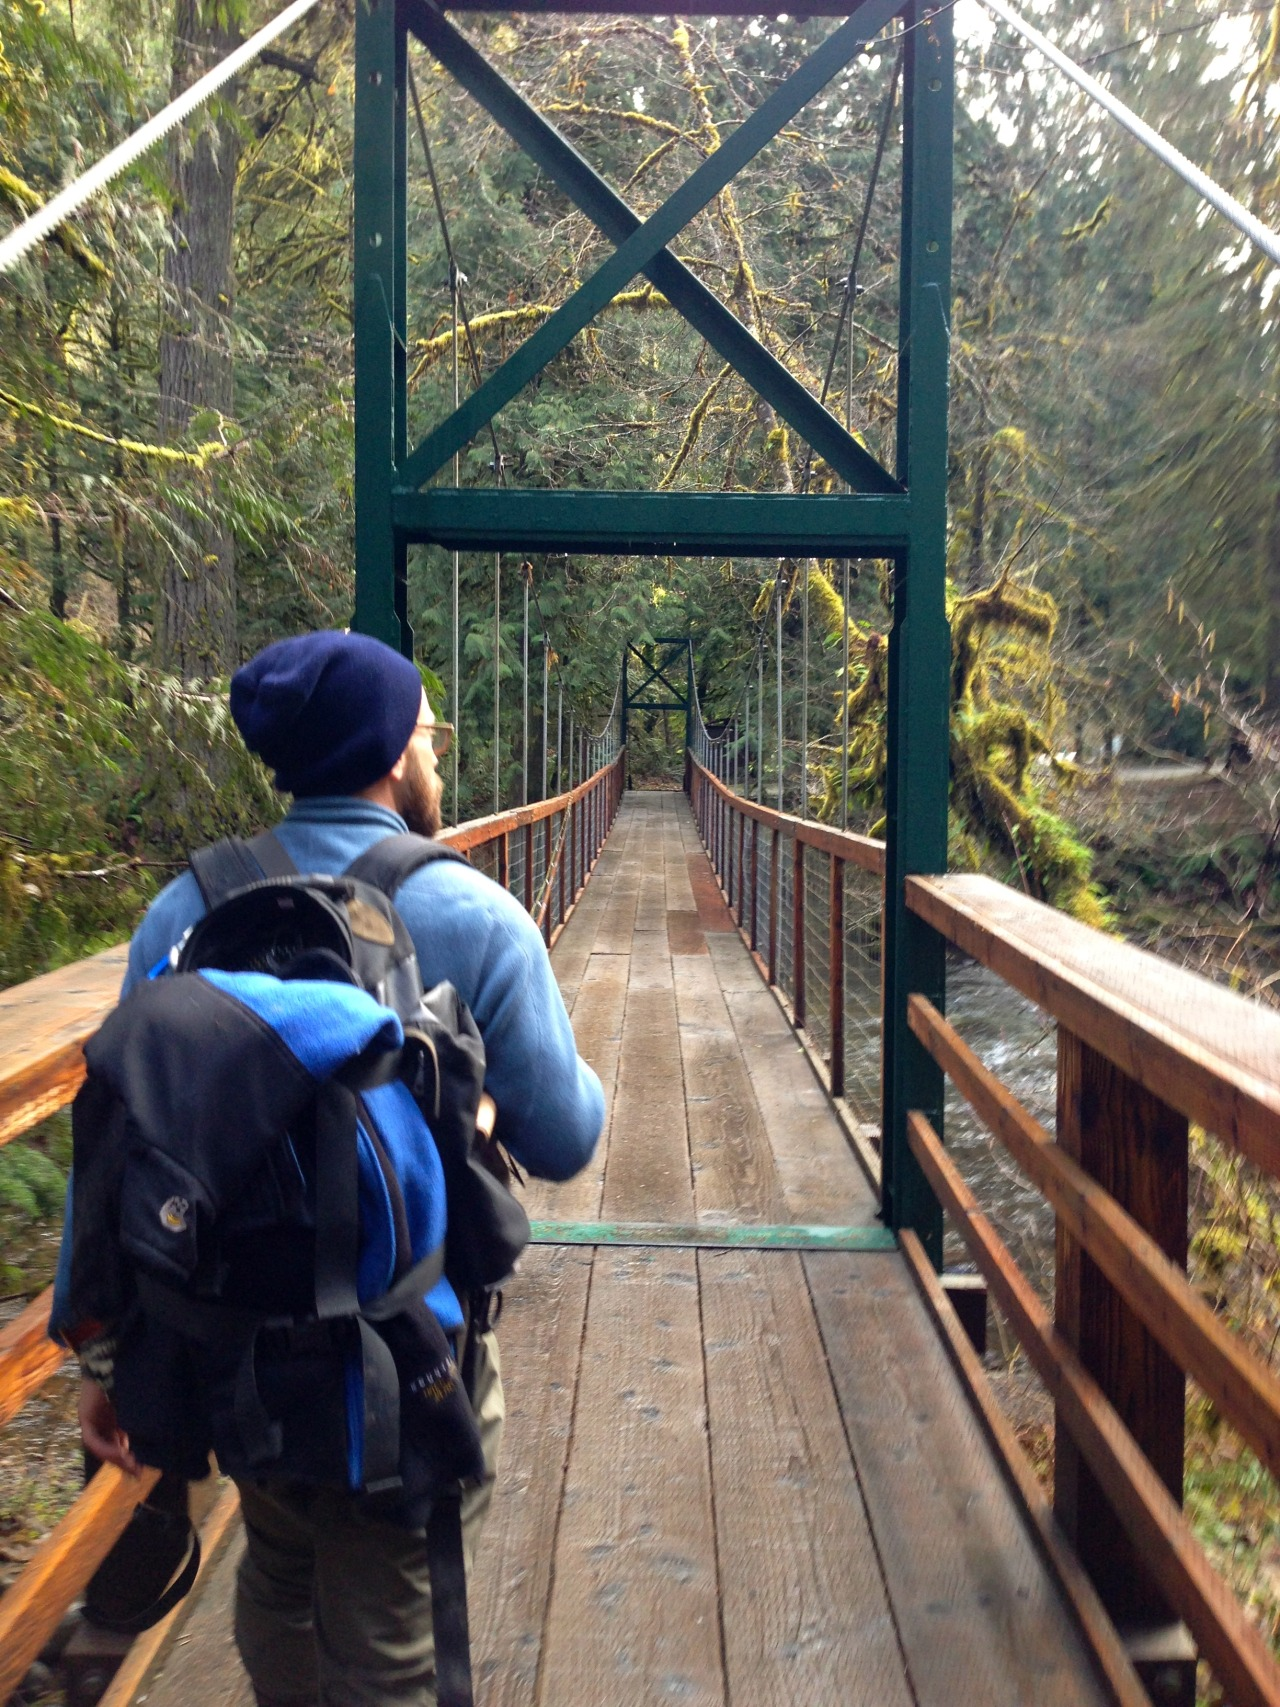 Jeff and I hiking across a suspended bridge to the next spot.